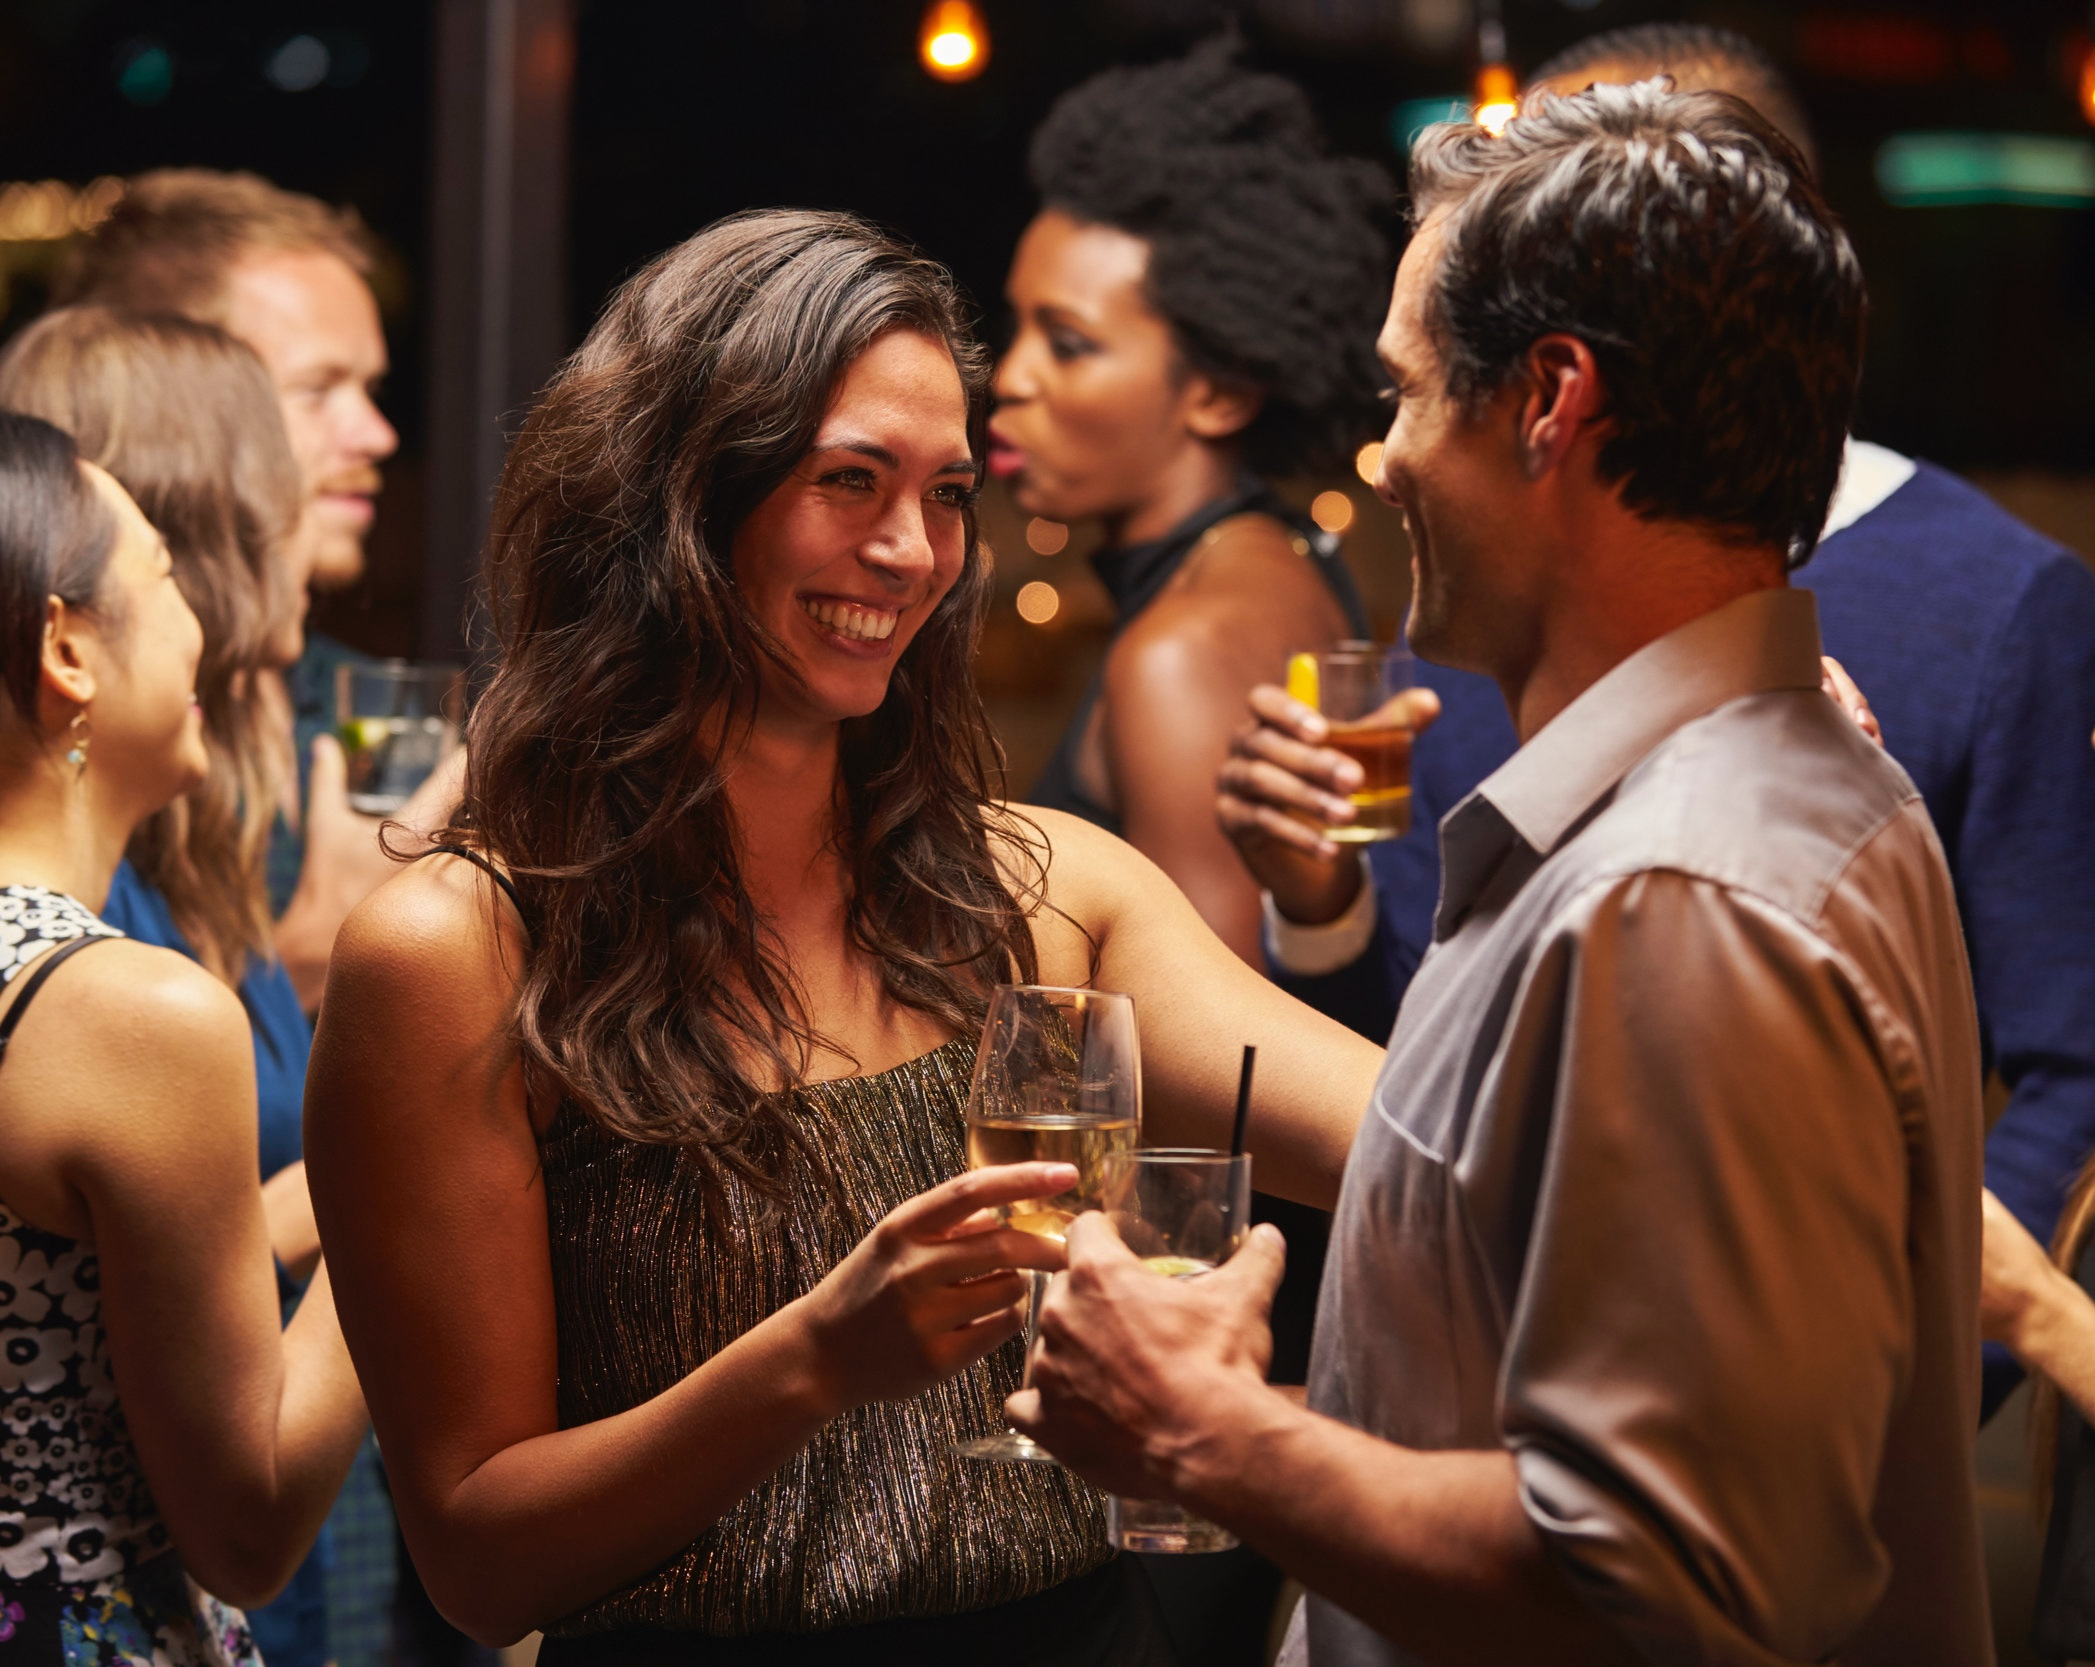 Singles Events - Do you find it difficult in Columbus, Ohio to meet other singles interested in a Real Relationship? We understand the hardships that Columbus singles face when it comes to connecting with other available professionals, like yourself. Our goal at Dating Directions is to make your search easier and more enjoyable. We host great Singles Events and invite you to let us be your matchmaker at these events. Fill out our Quick Connect so we can get to know you better when we introduce you to others.Subscribe to our Singles EventsLearn More about our Columbus Singles Events